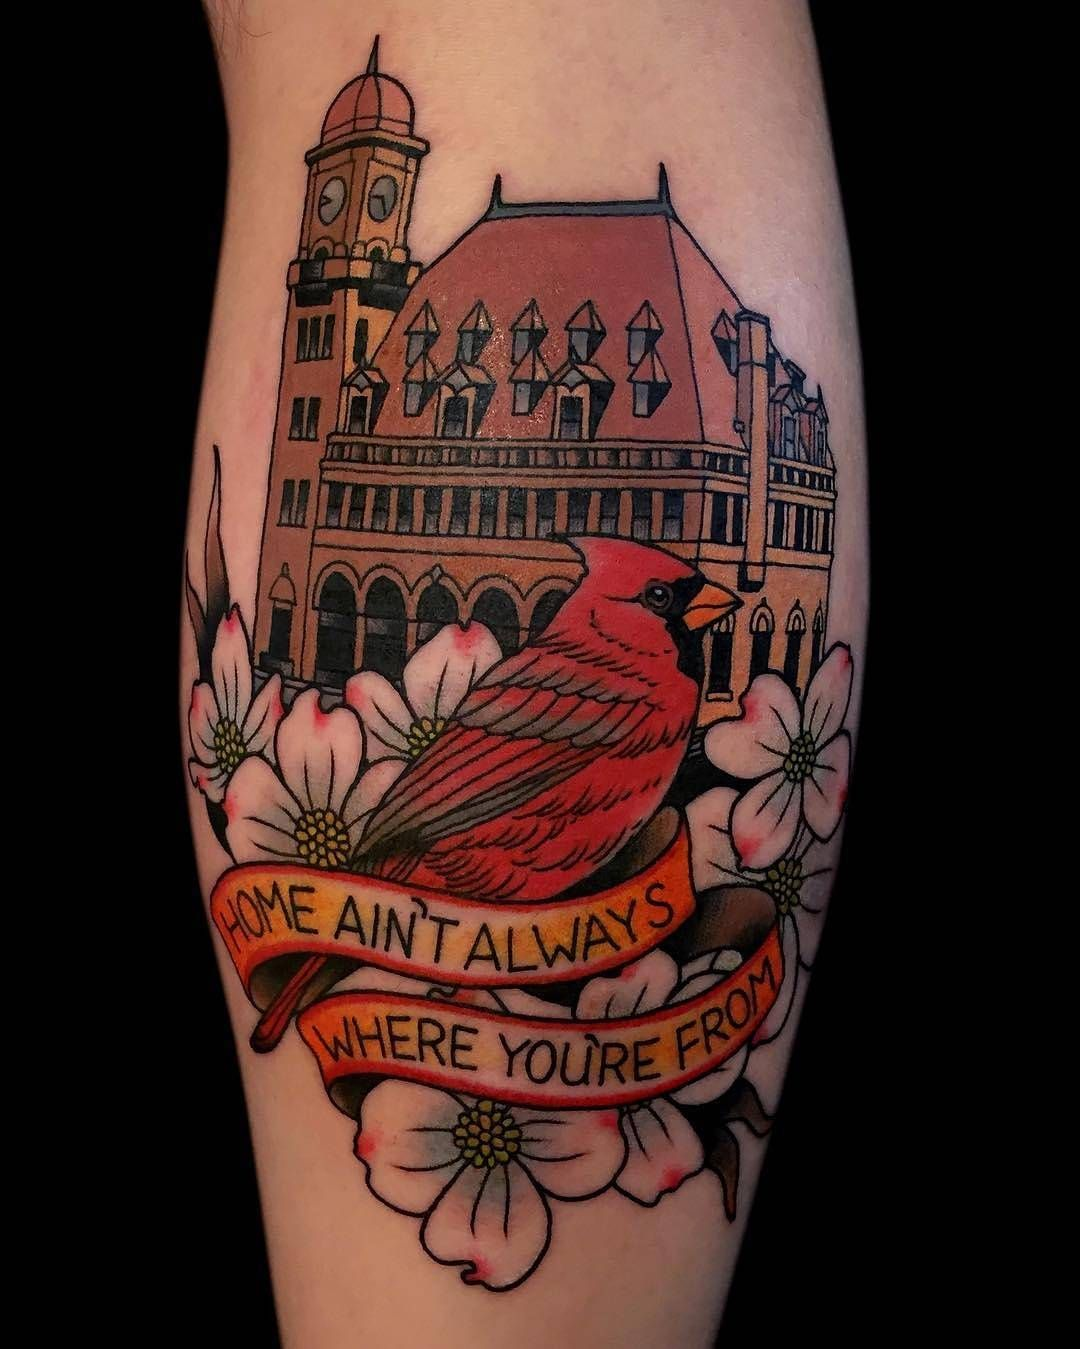 Home aint always where youre from by davidbruehl at red